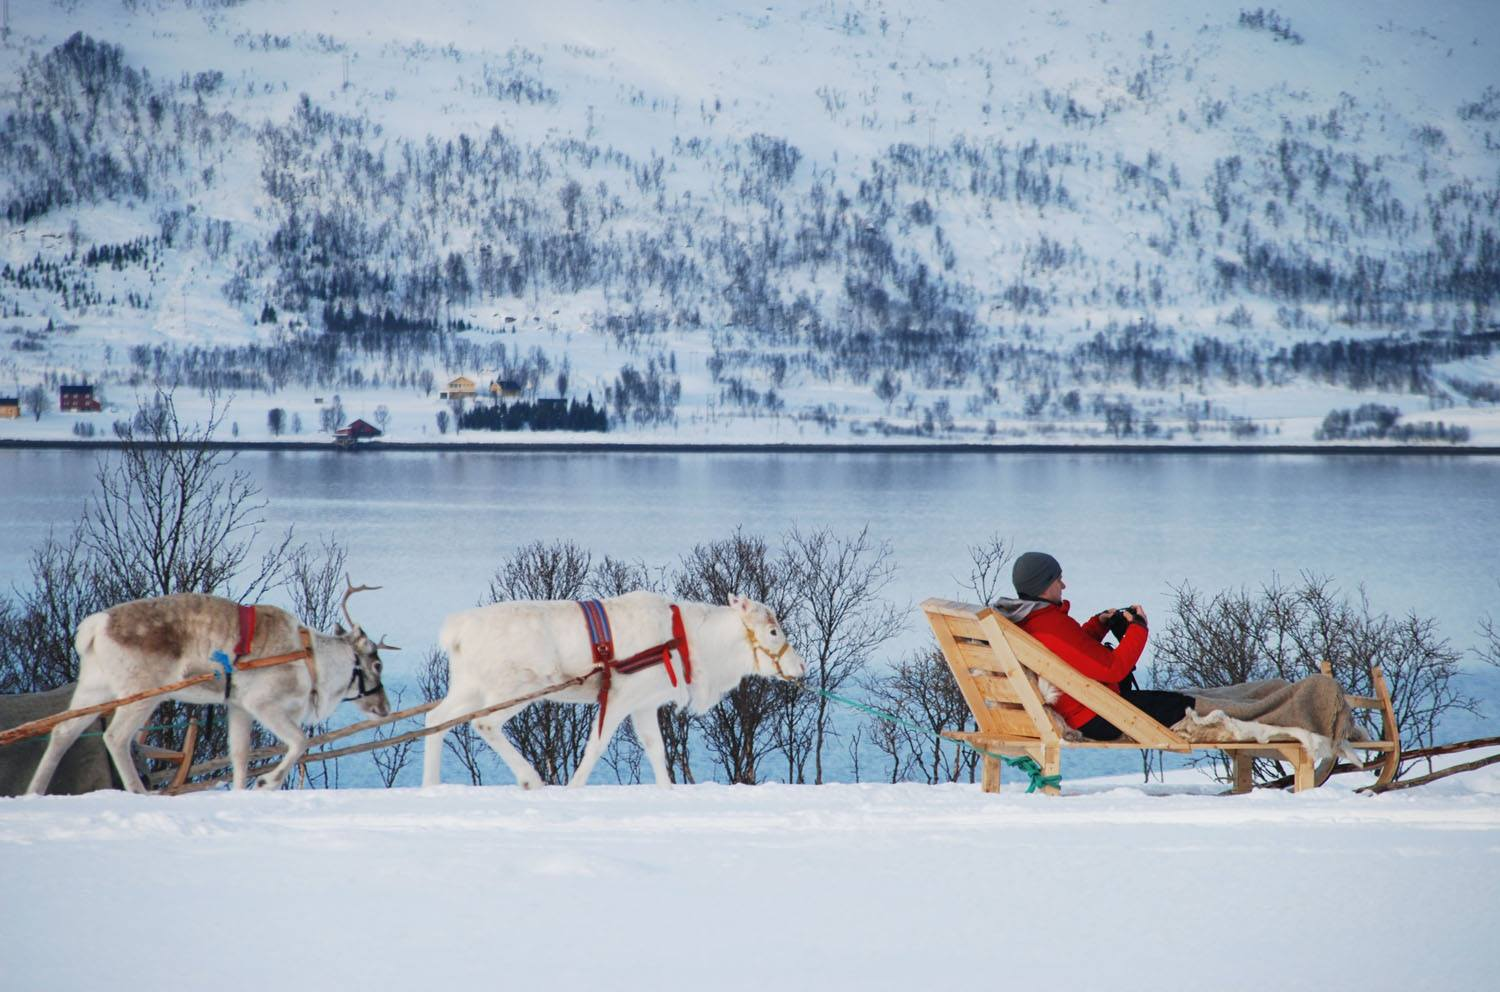 Reindeer Sledging, Tromso, Norway. Photo: Youssef Amaaou. Image©Youssef Amaaou